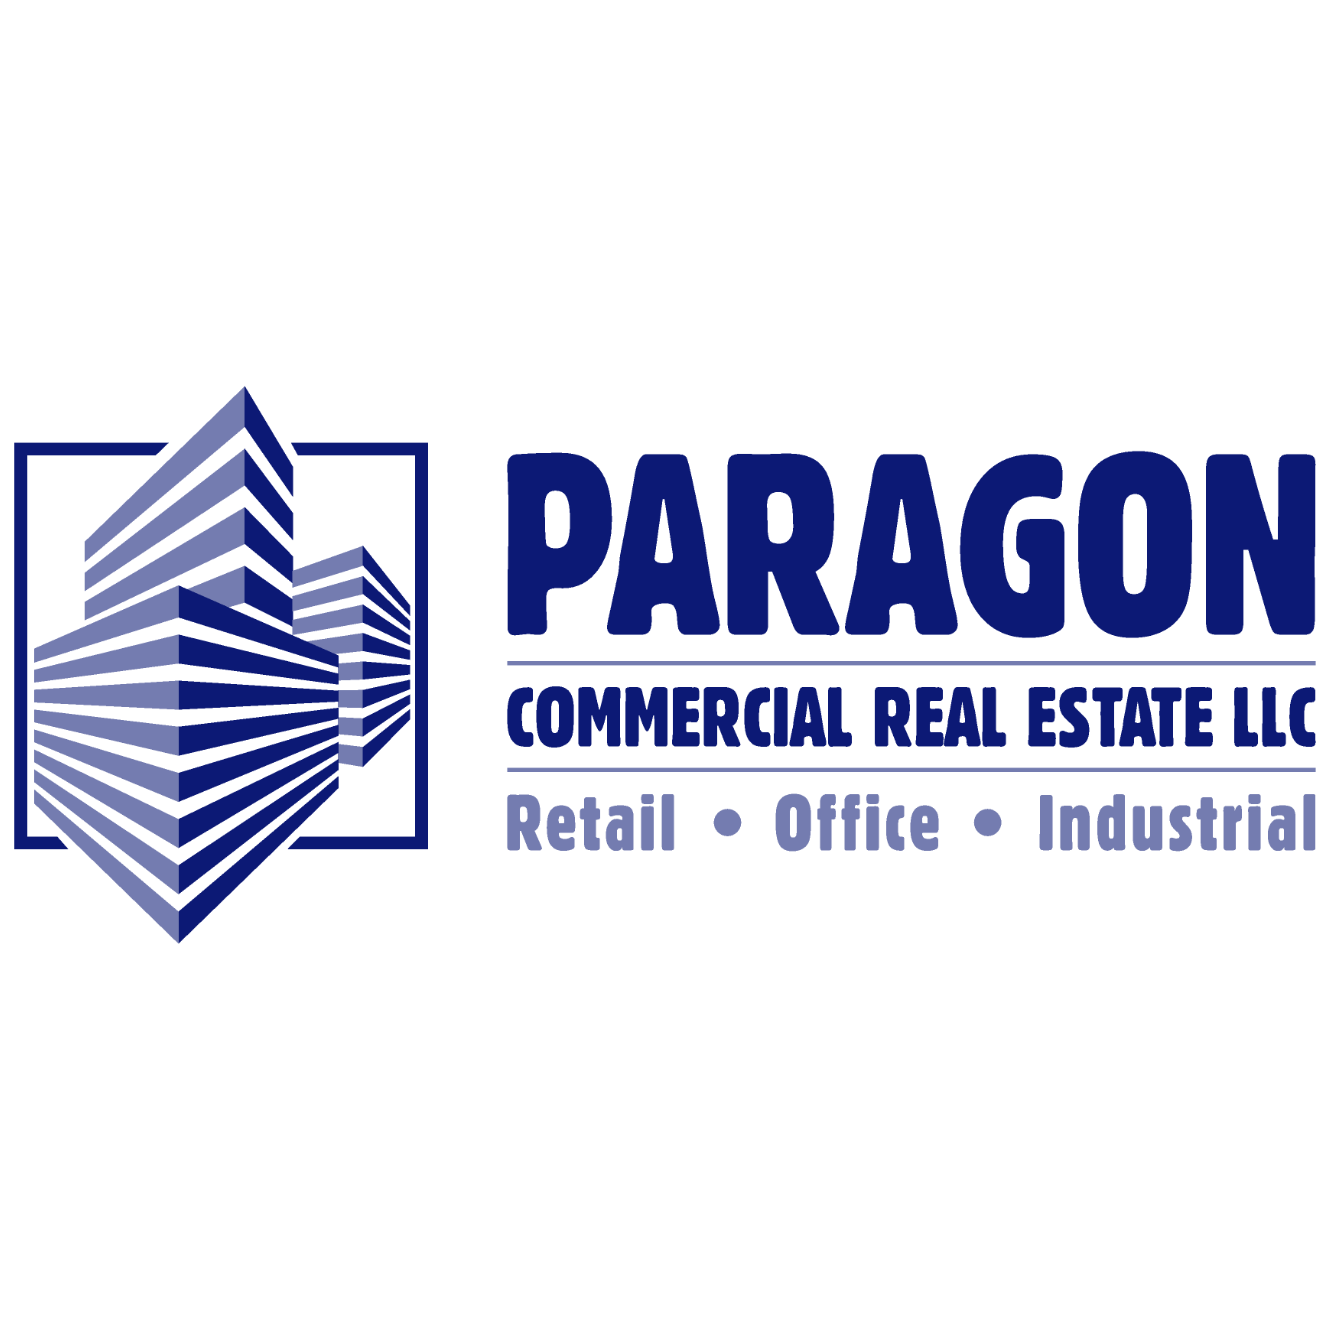 Paragon Commercial Real Estate LLC